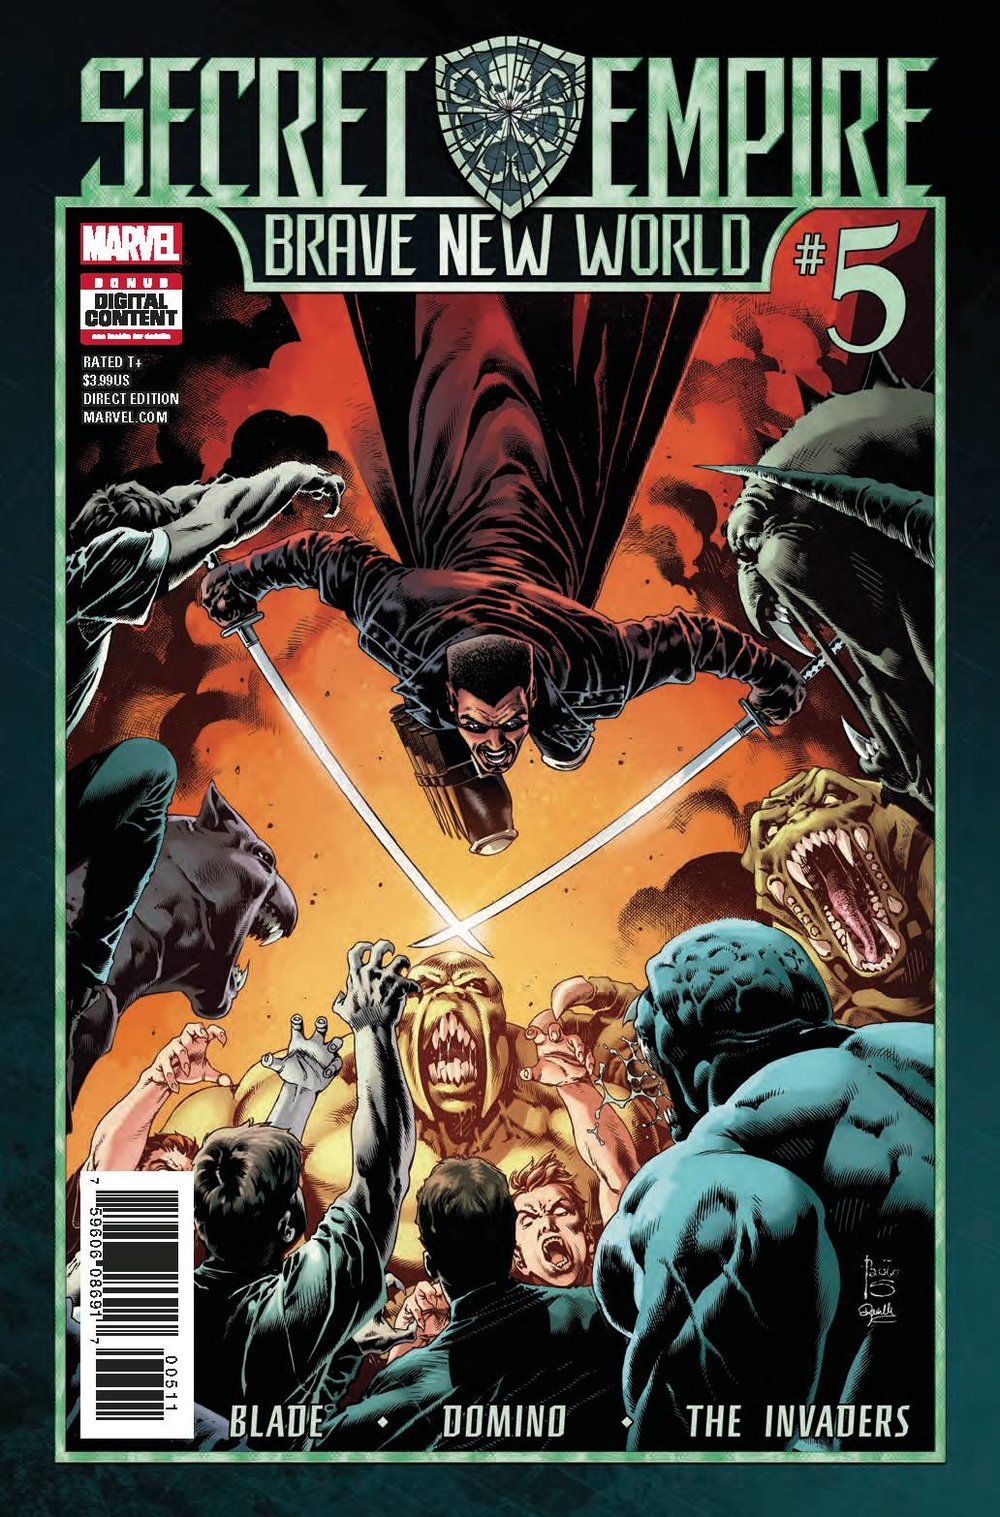 SECRET EMPIRE BRAVE NEW WORLD 5 of 5 SE.jpg